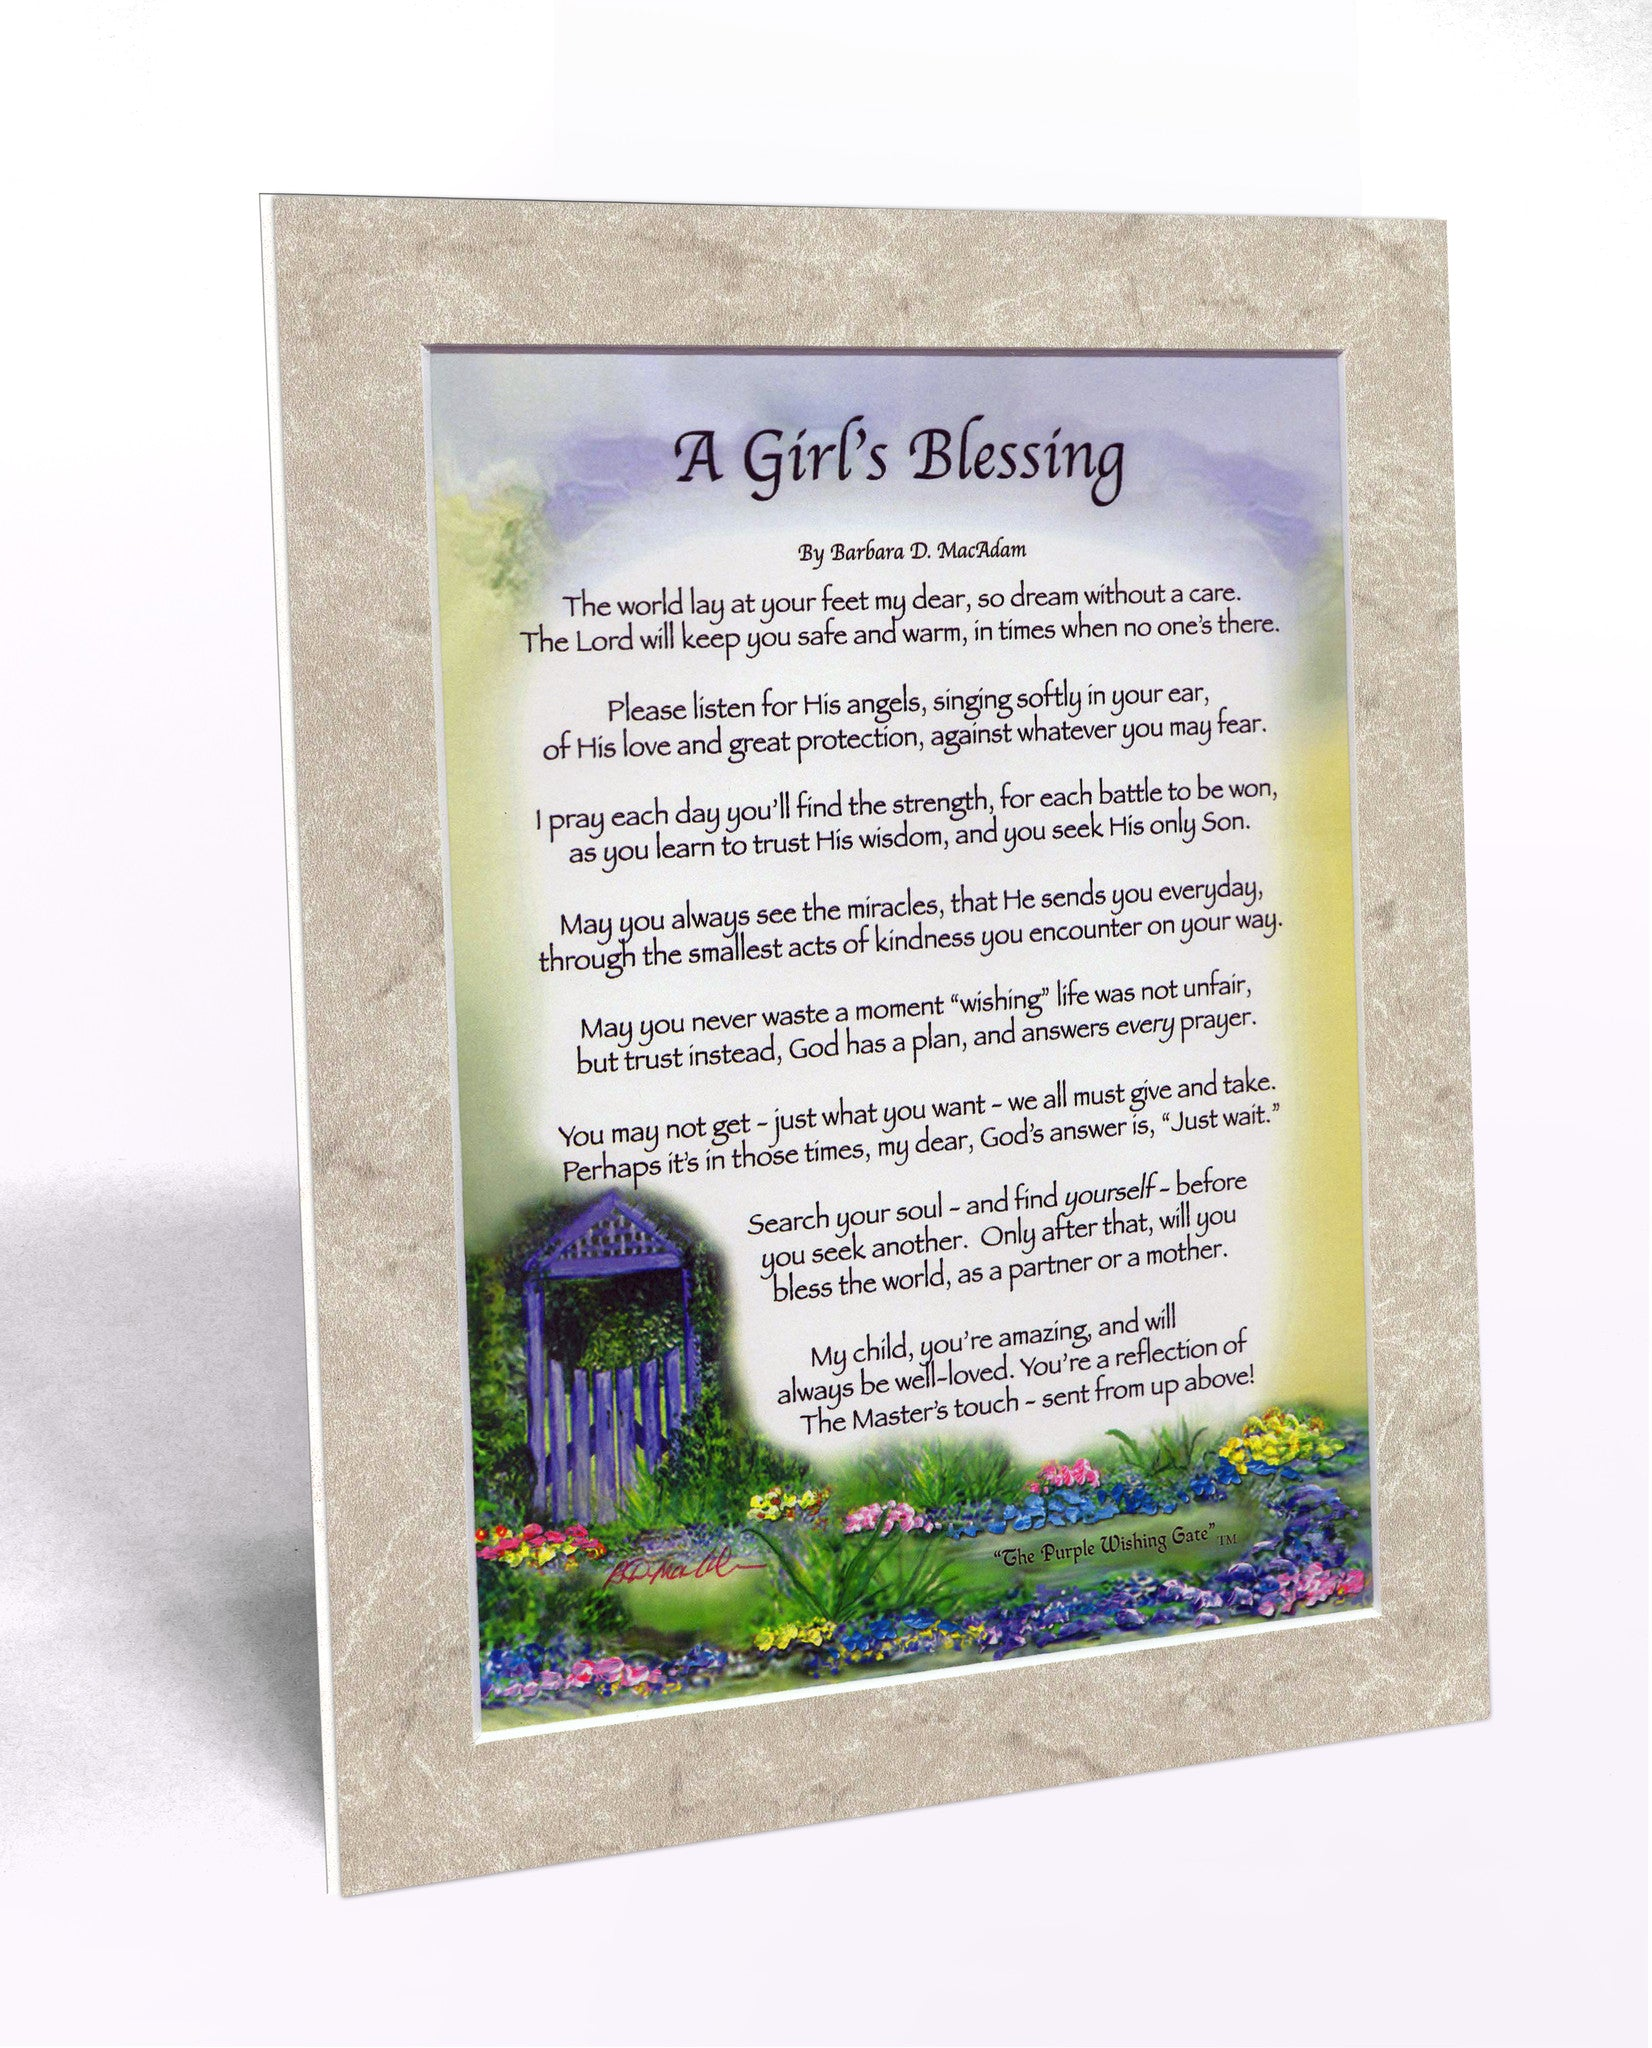 A Girl's Blessing (8x10) - 8x10 Custom Matted Clearance - PurpleWishingGate.com